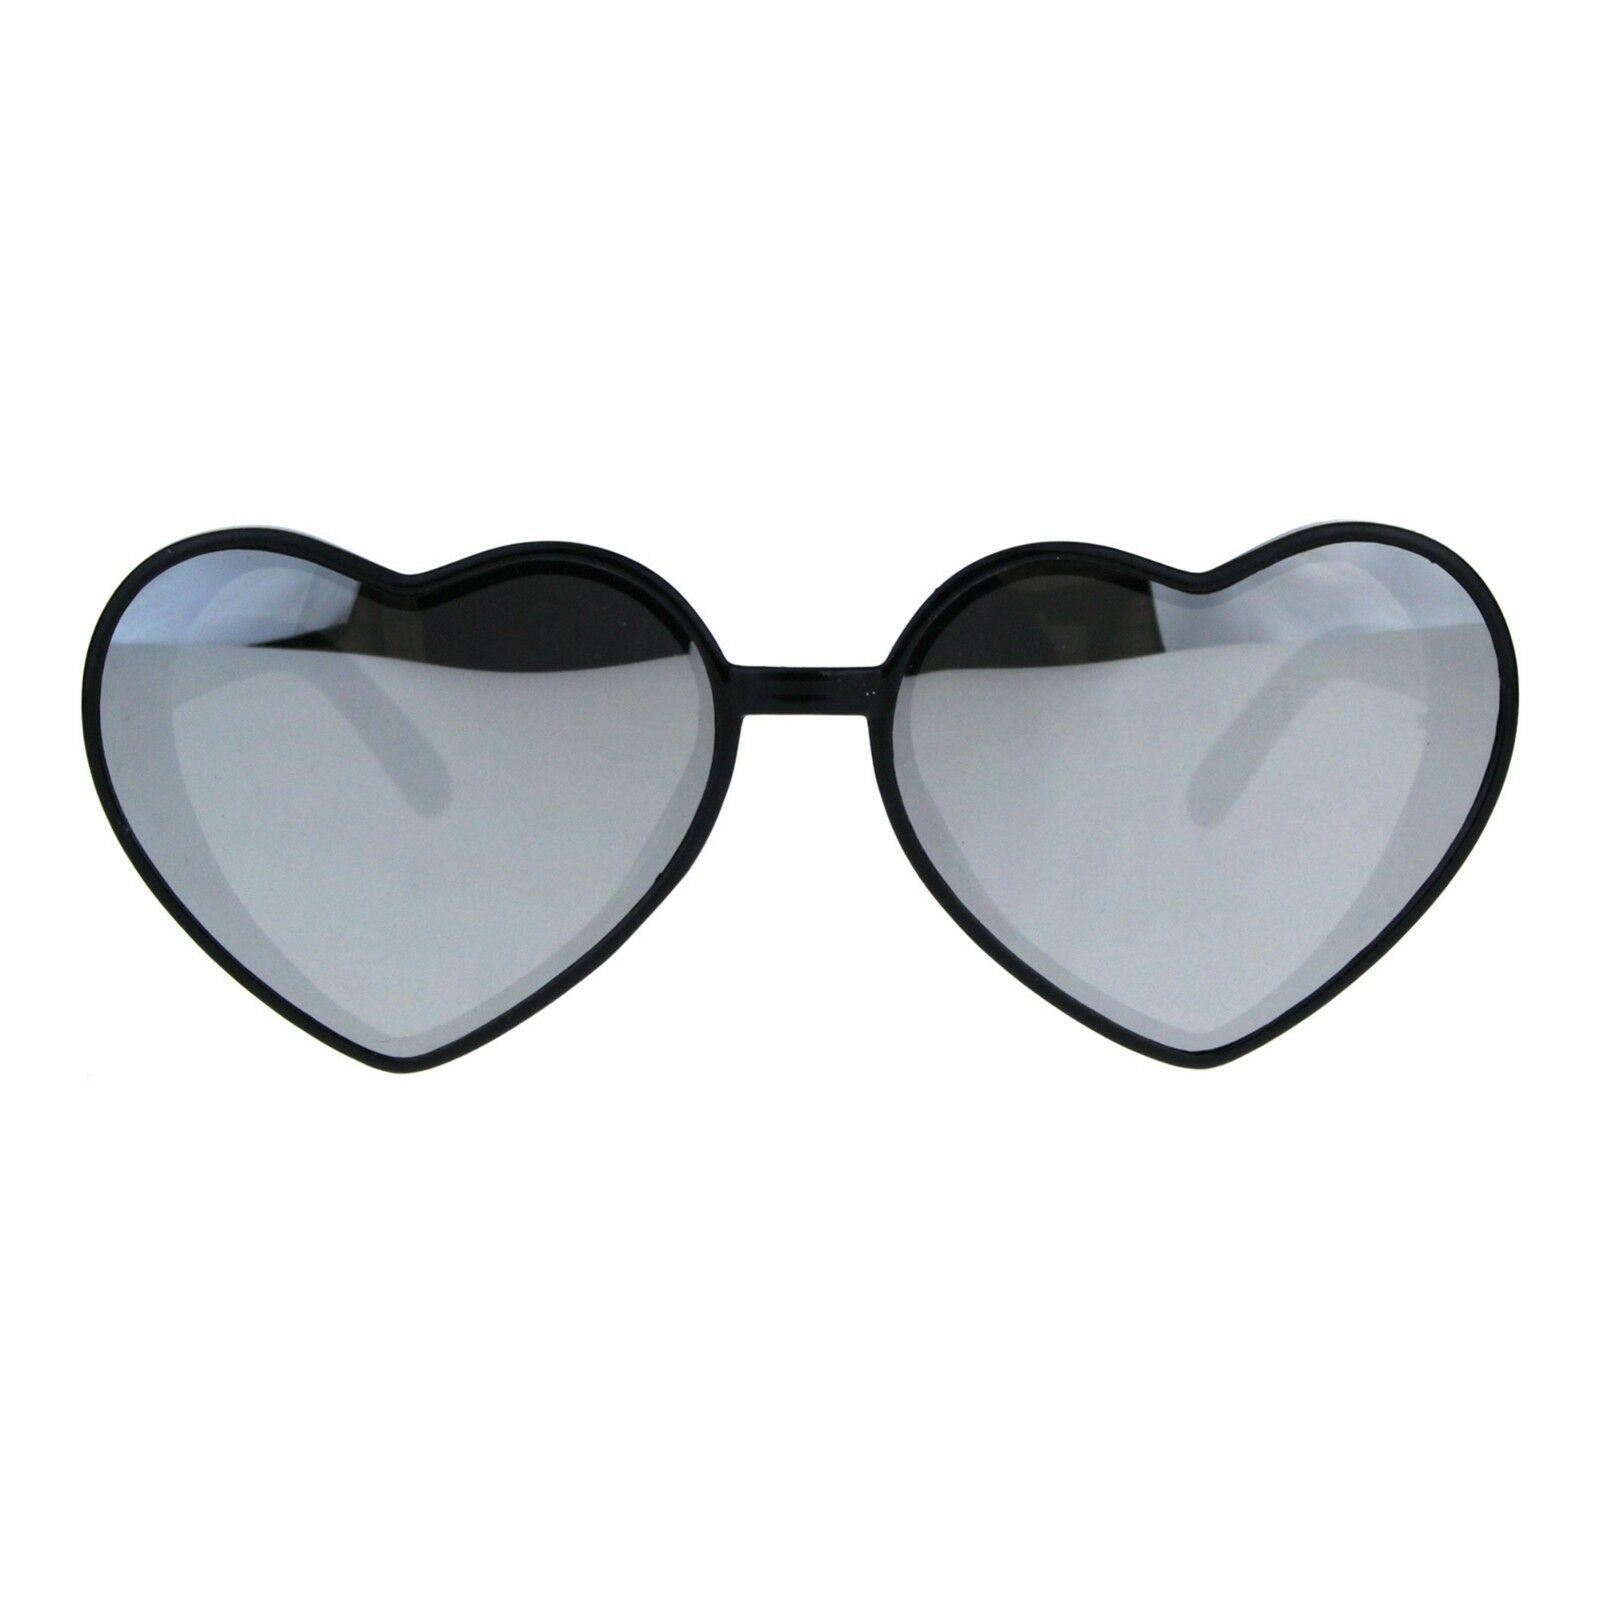 Oversized Heart Shape Sunglasses Womens Fashion Mirrored Lens Shades image 6